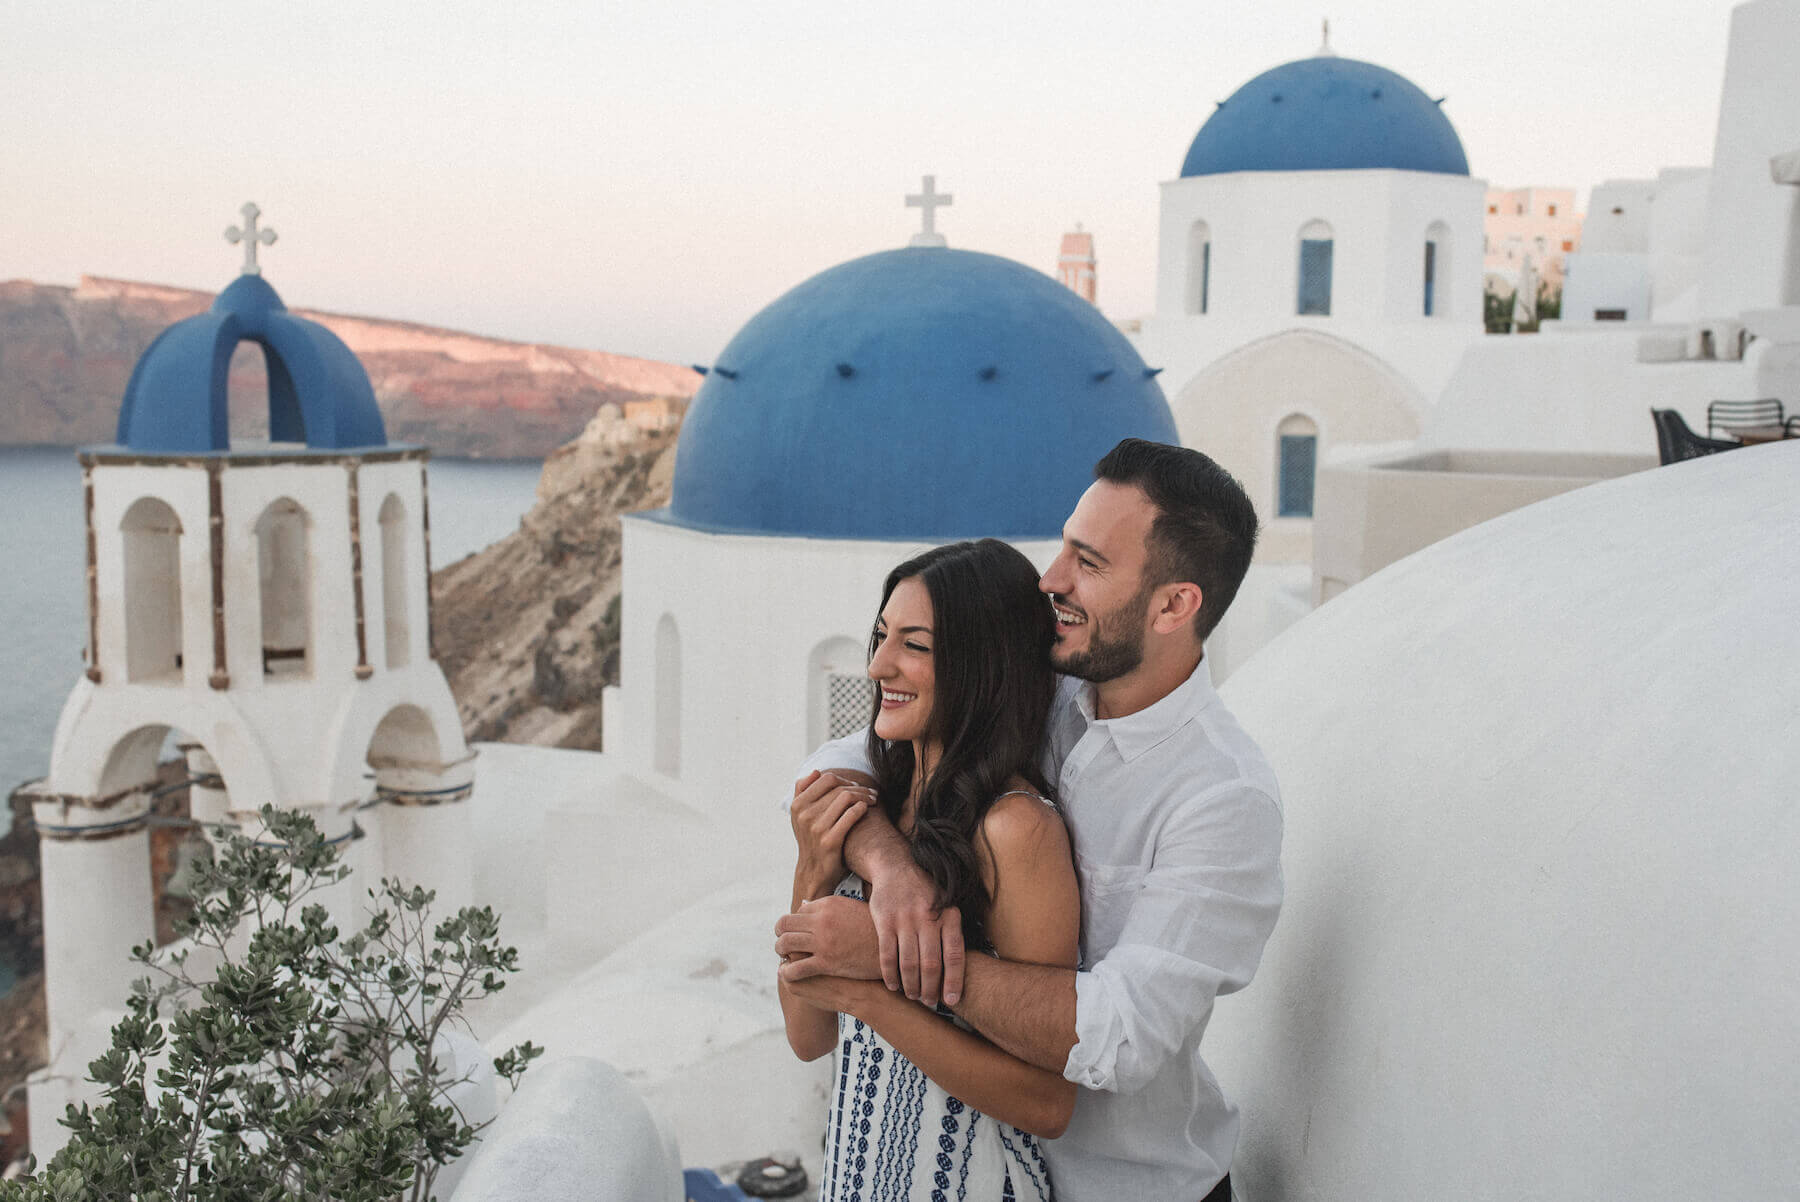 A man is holding a woman after he proposed in Santorini.